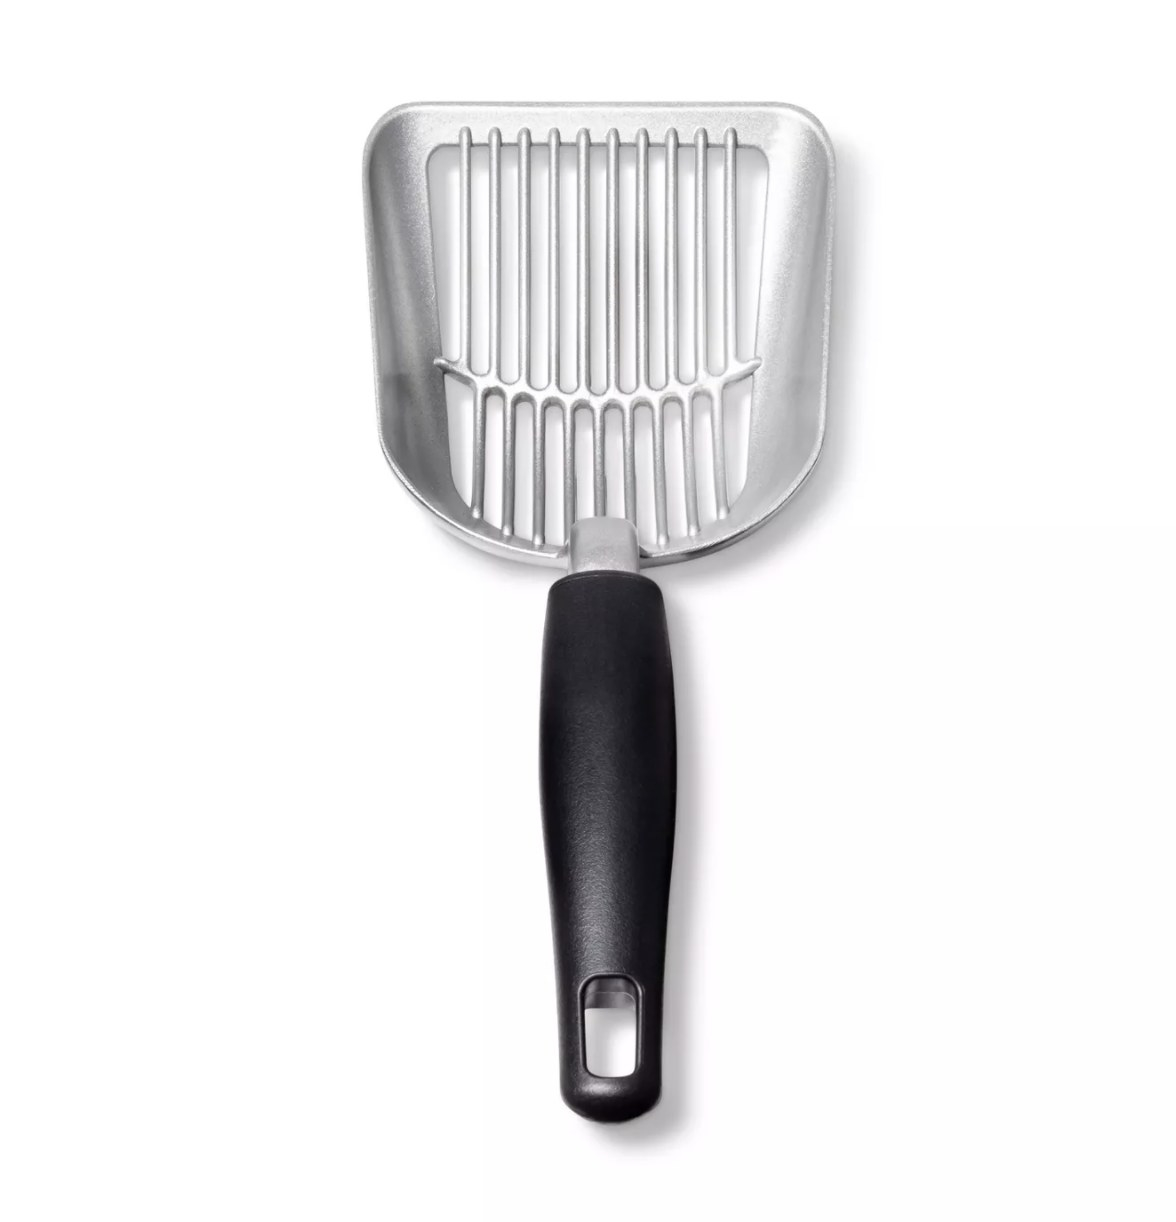 The silver and black cat litter scoop